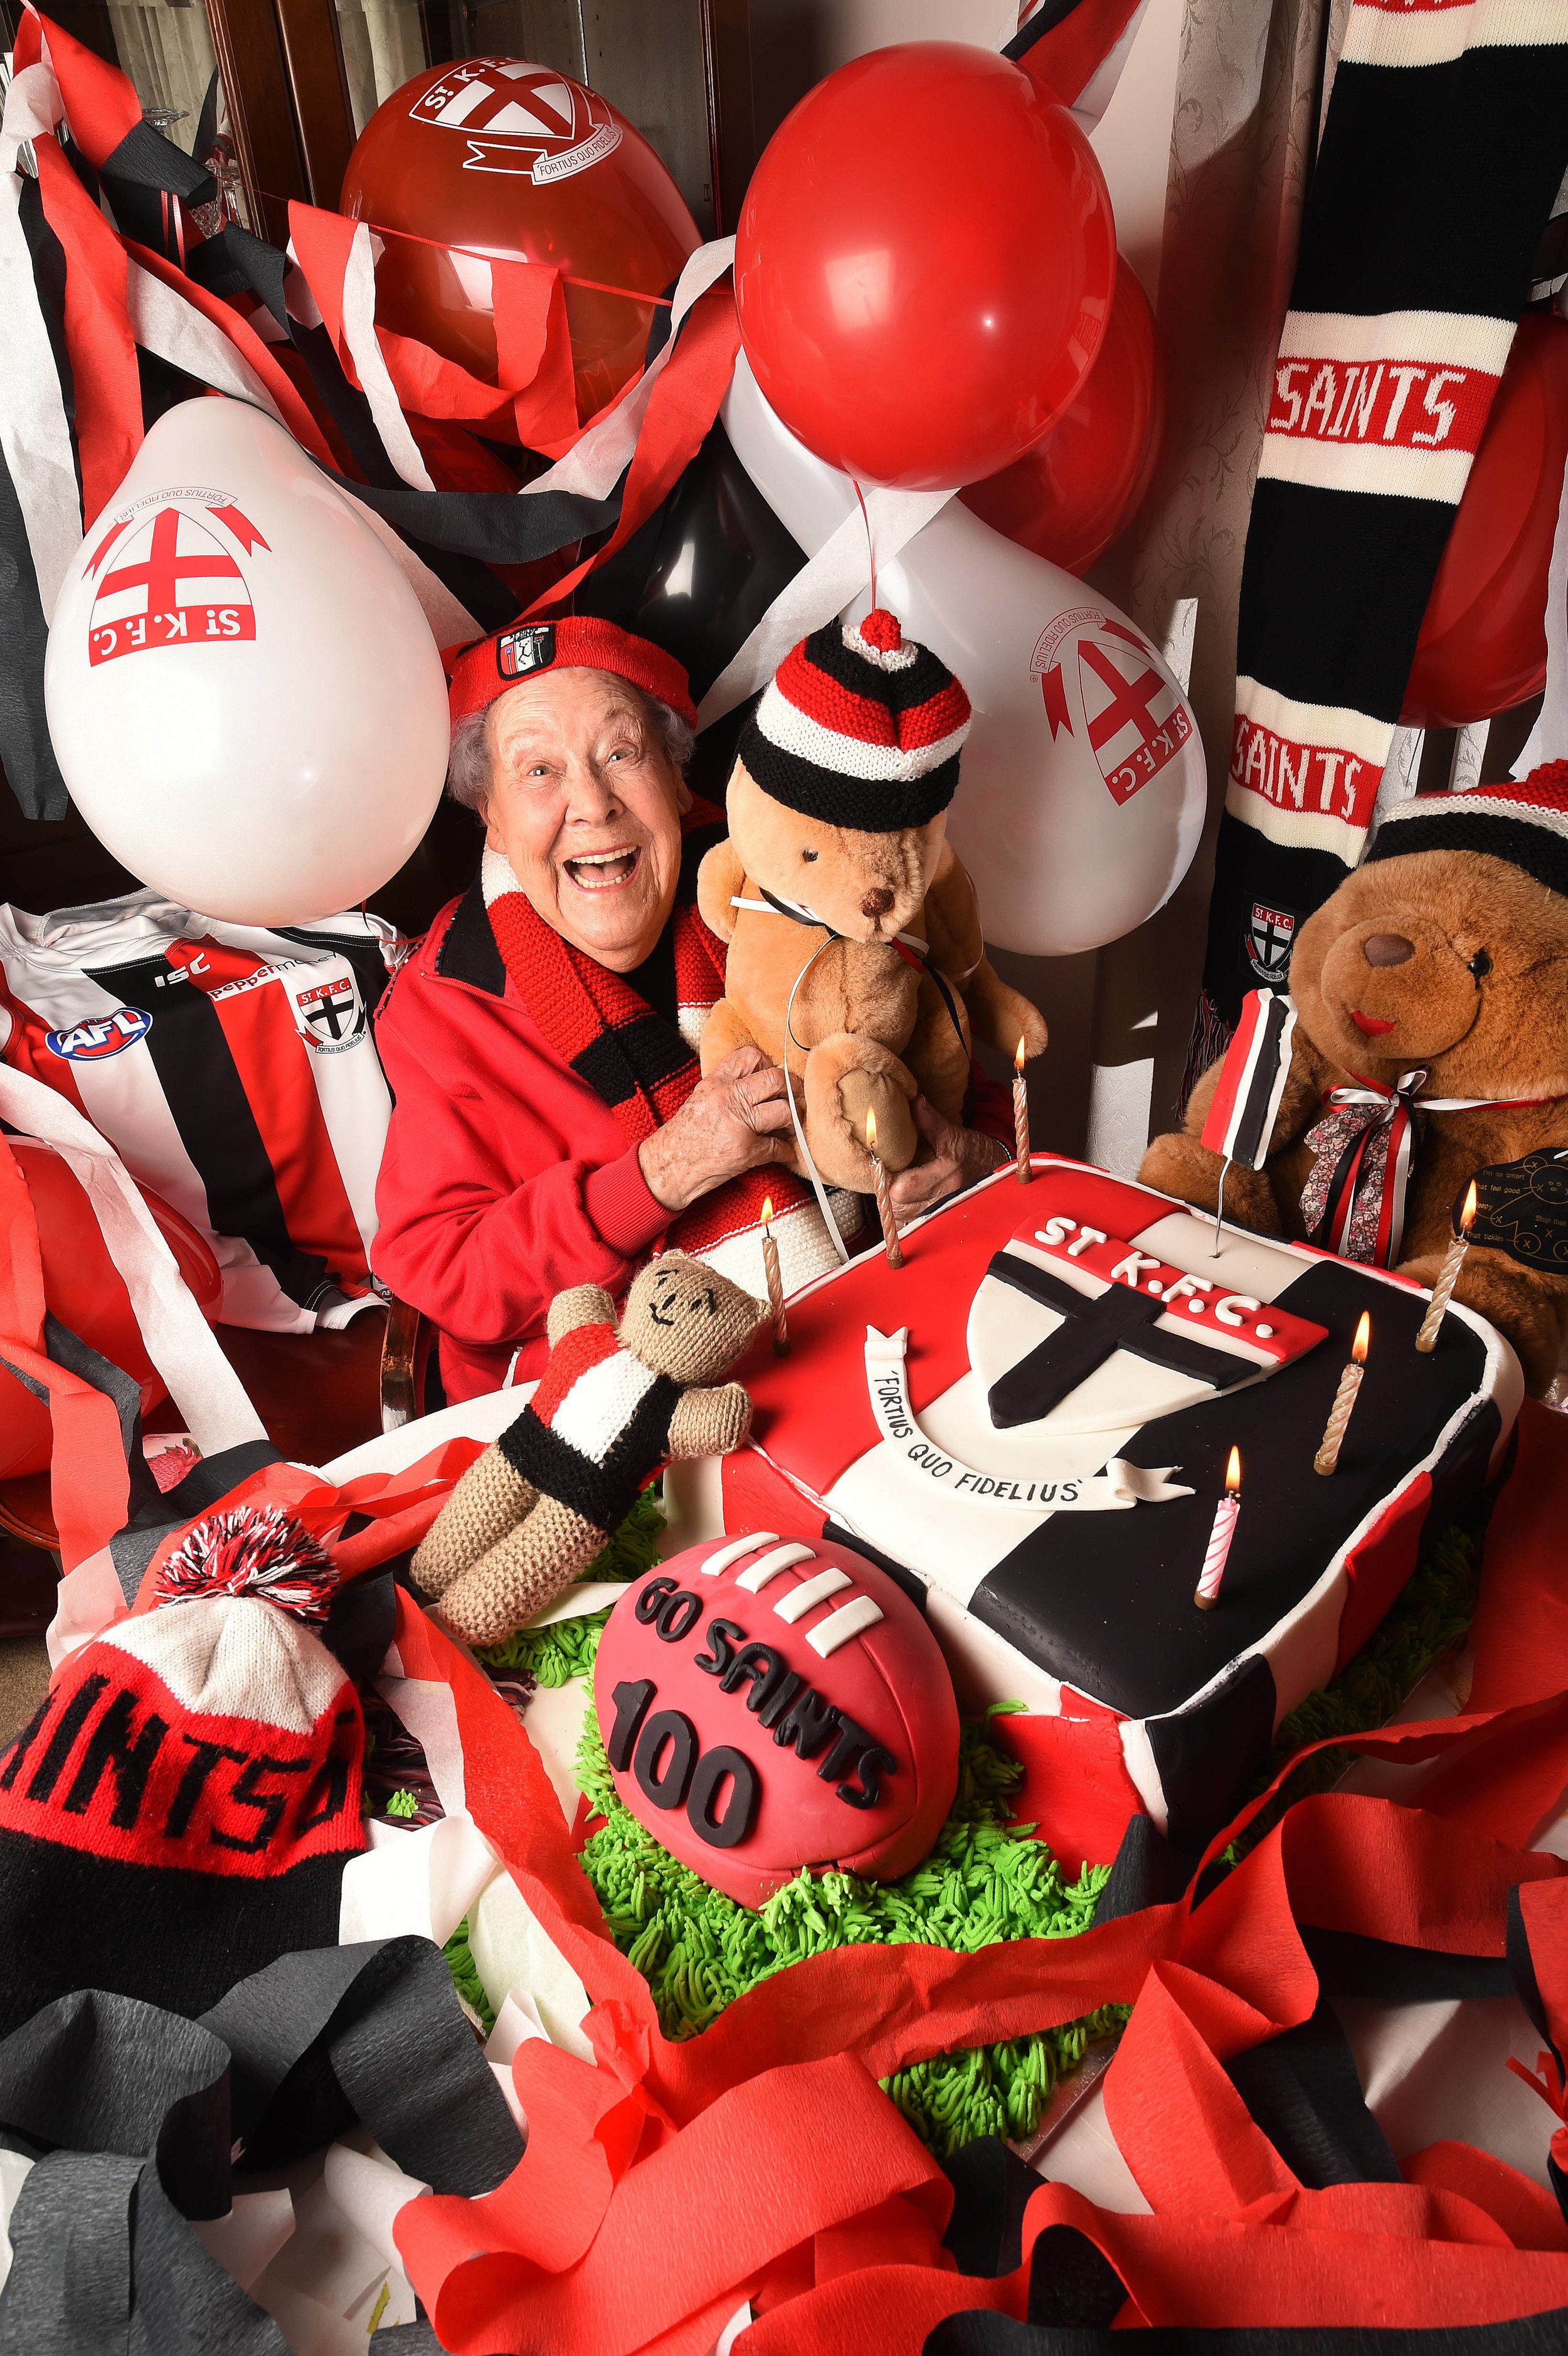 CHP_Export_142955236_Spirit of Football for SHS feature Jess Macaulay 100 year old  mad St Kilda.jpg